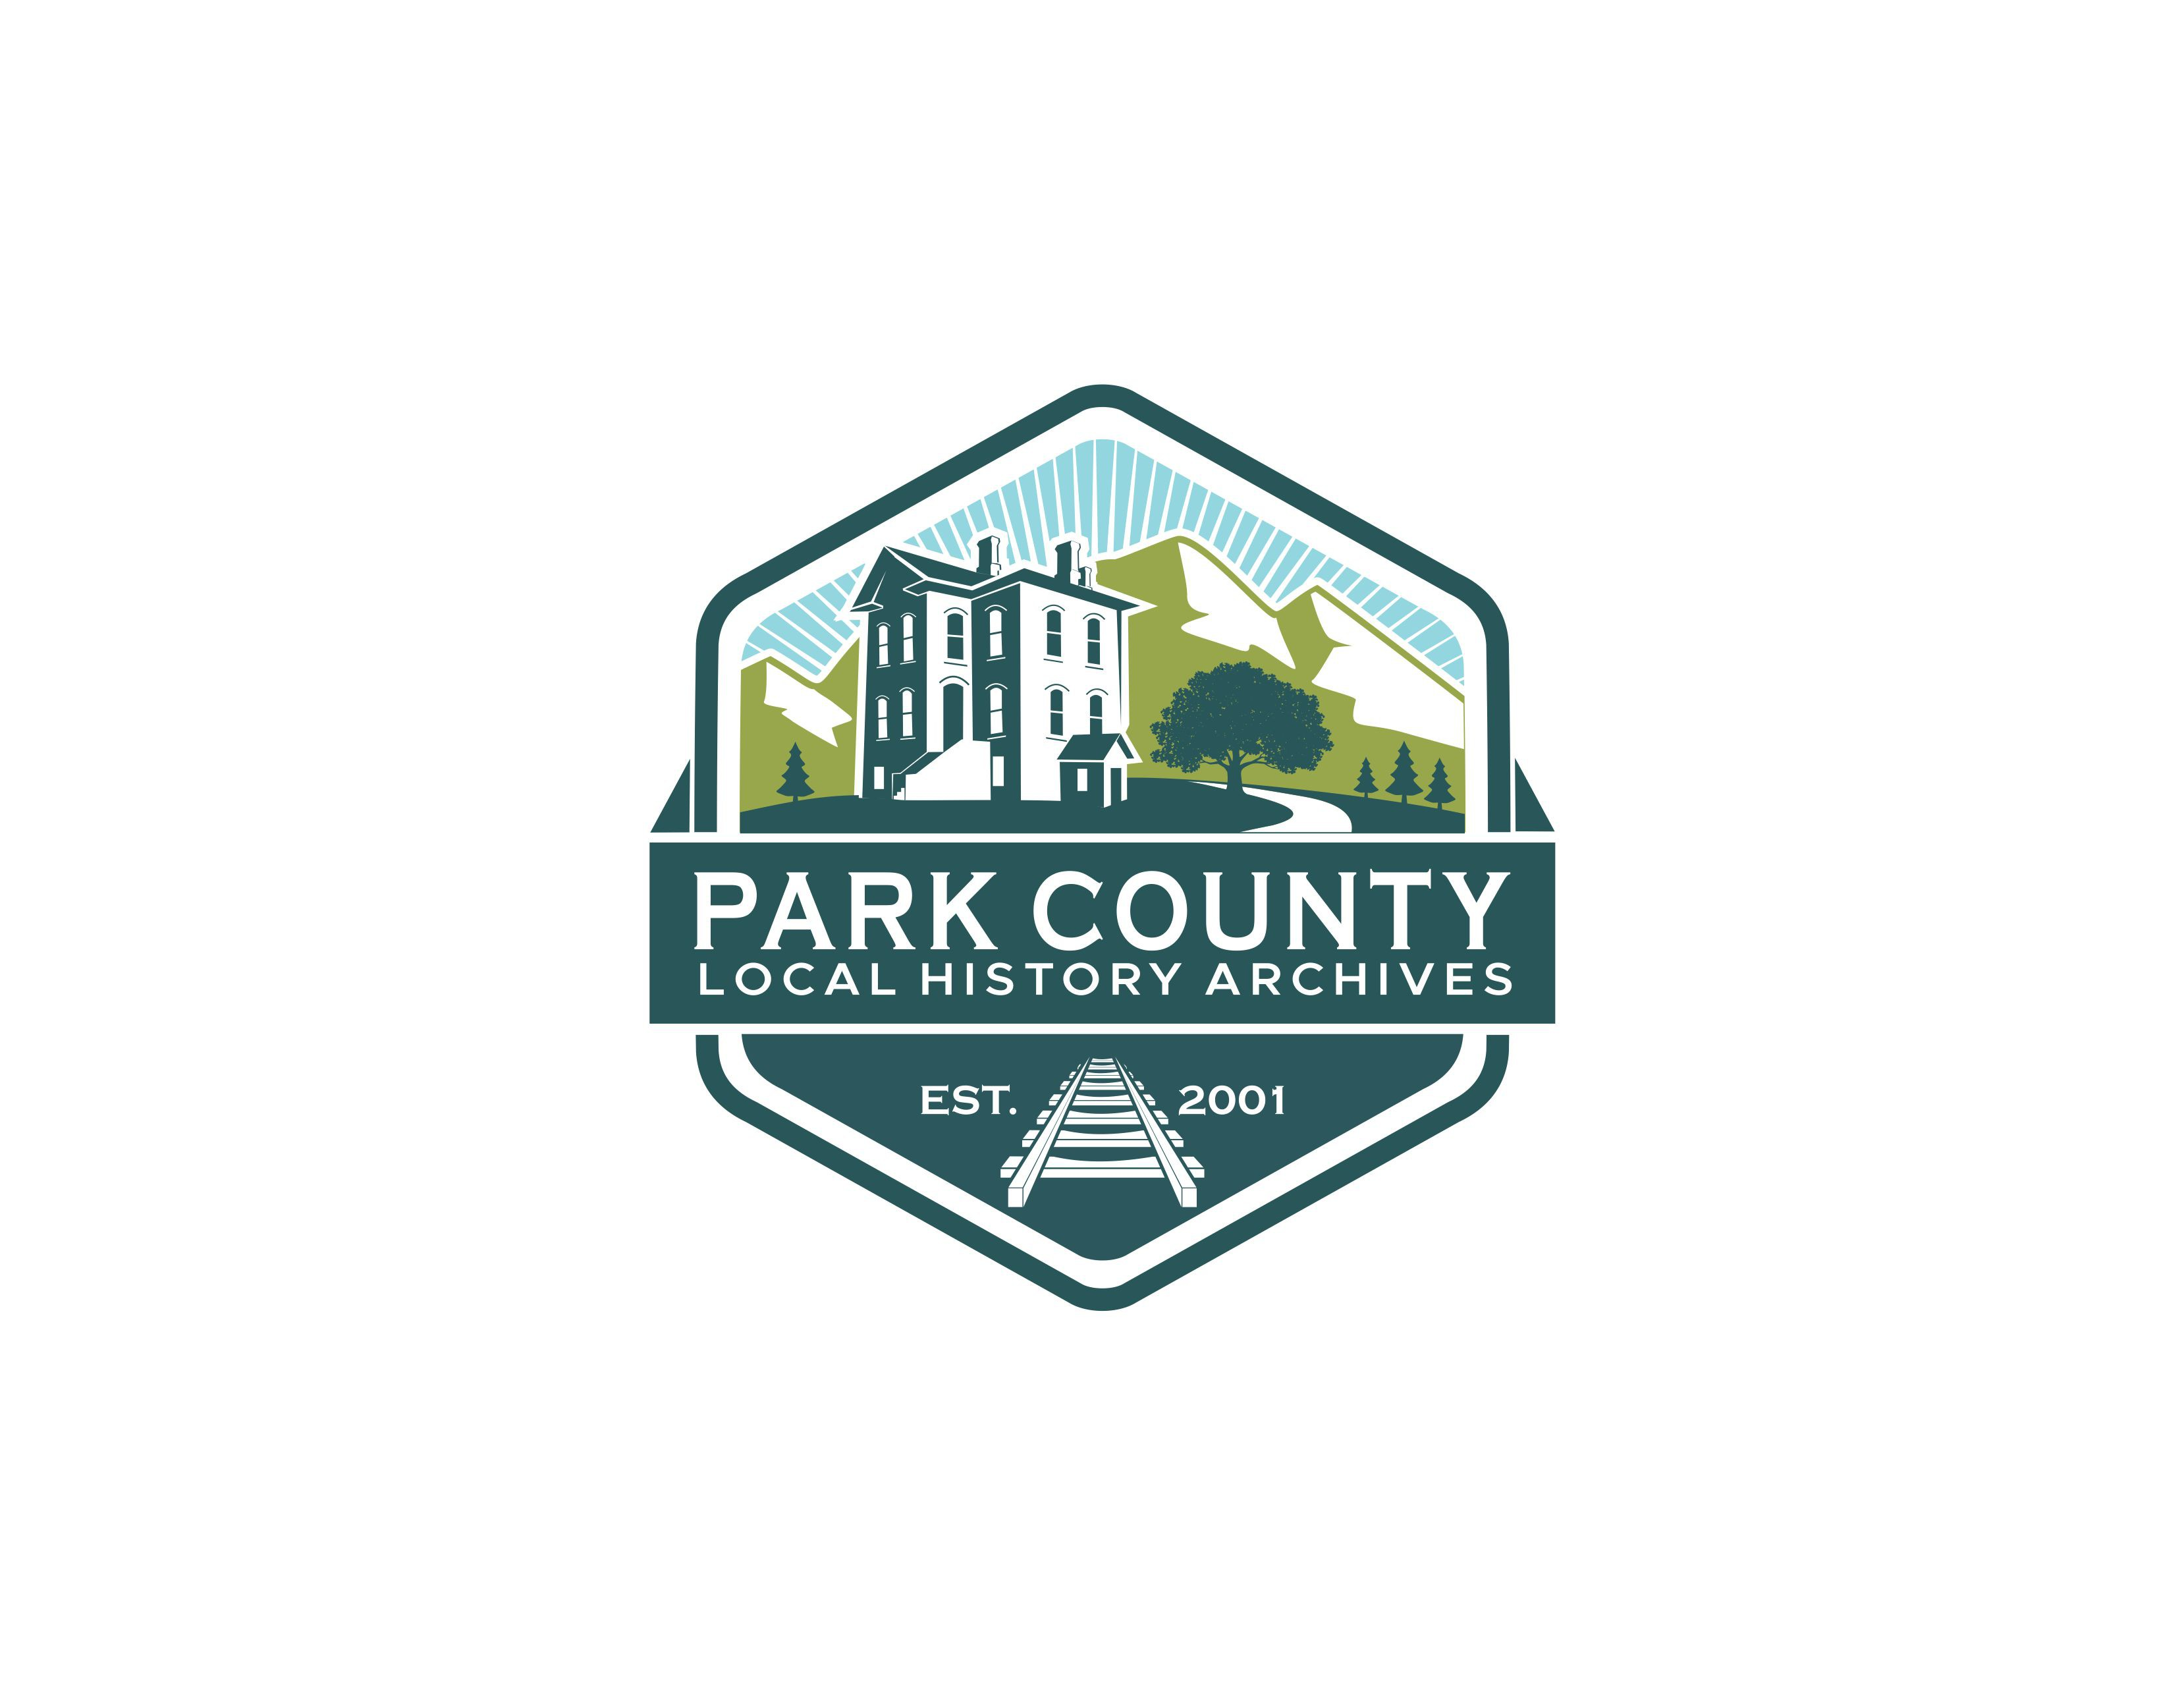 We need YOU to help us with our NEW LOGO for Historical Archives in Park County, Colorado!